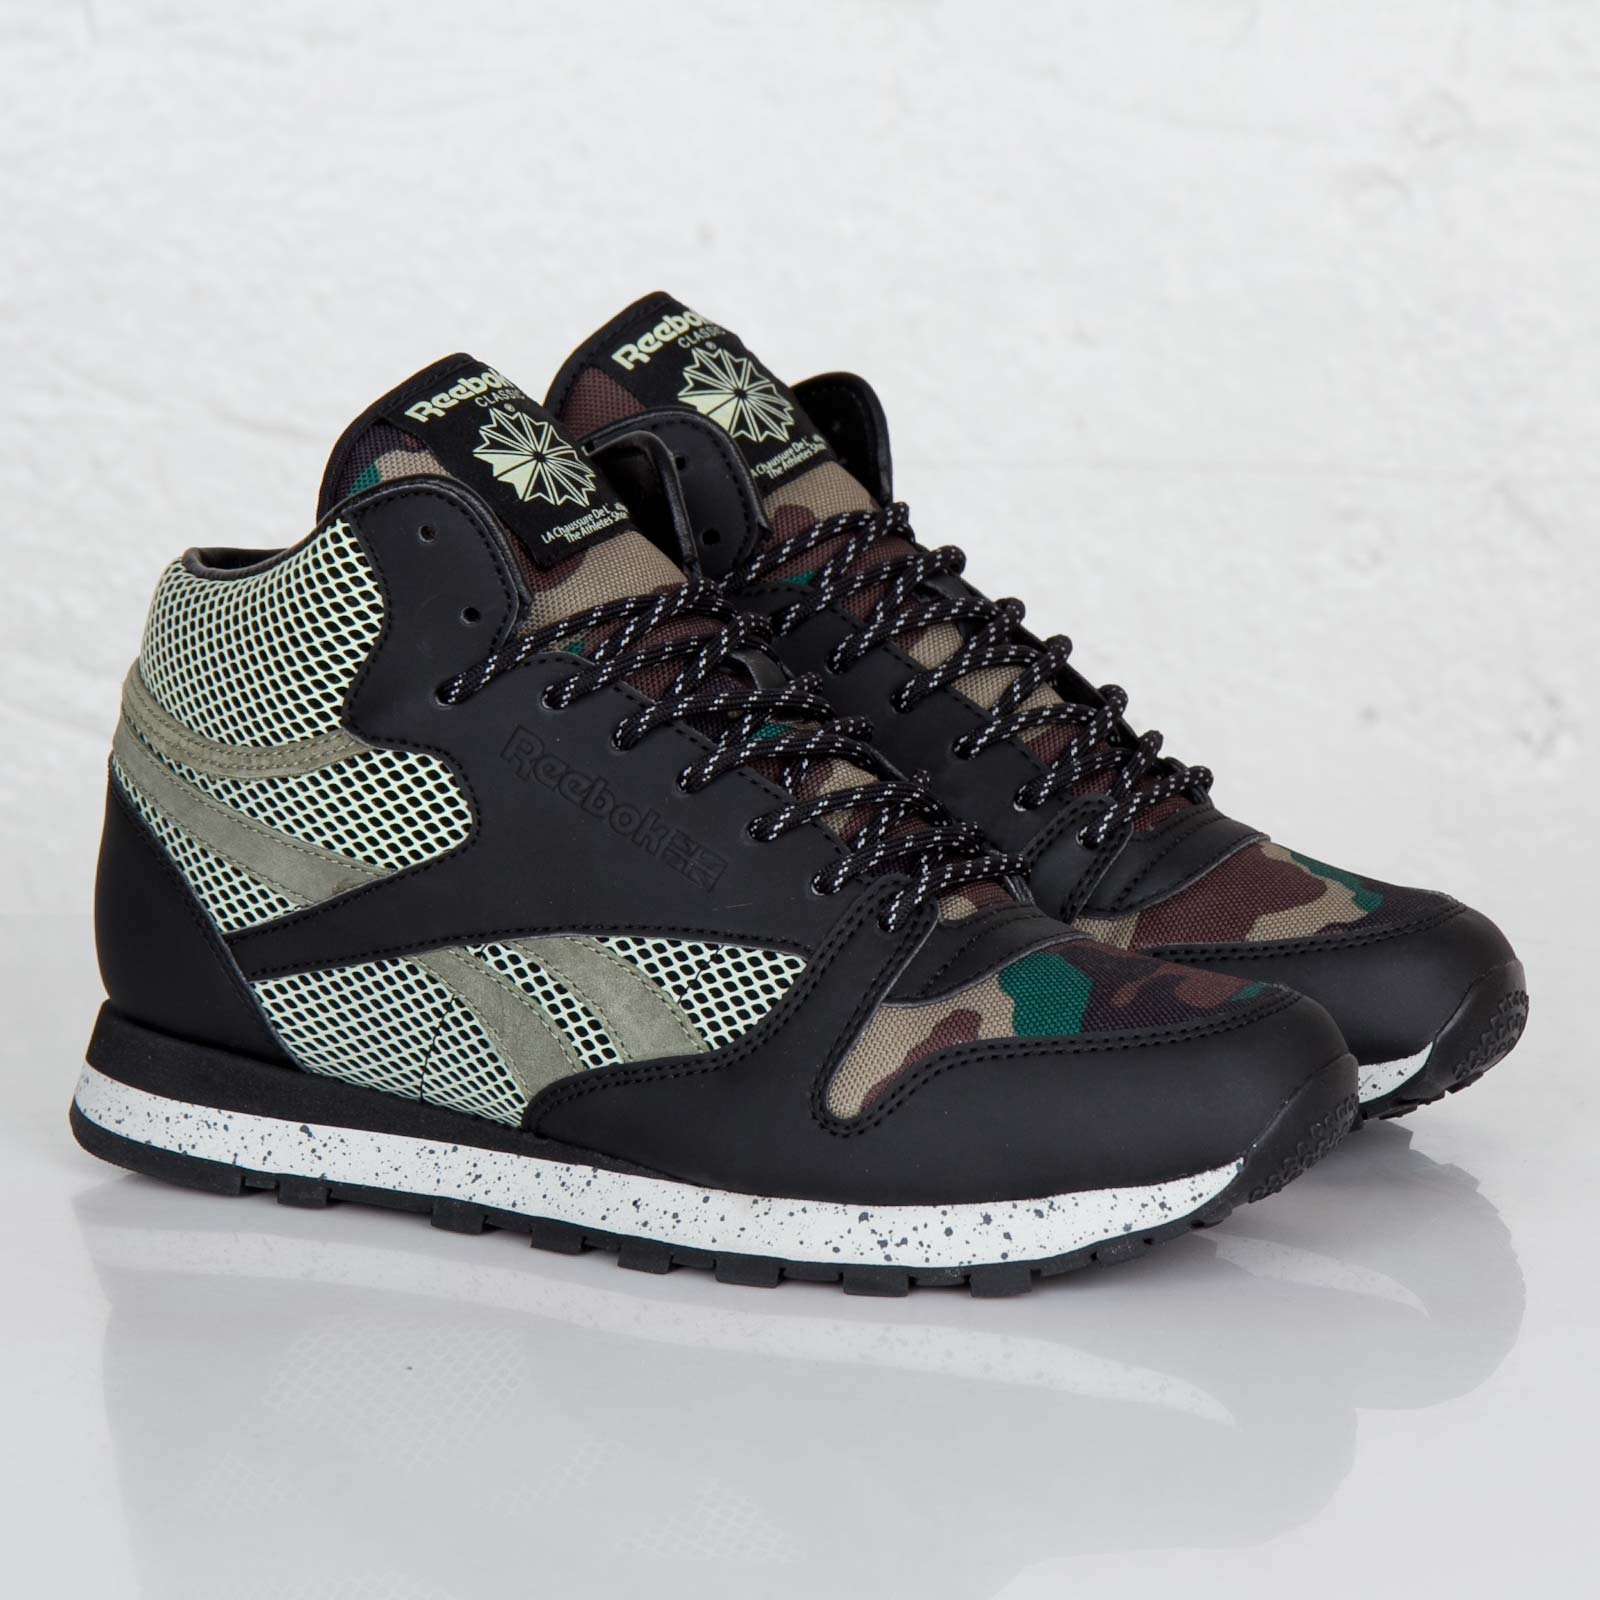 2e485e3980335 Reebok Classic Leather Mid R12 - V54294 - Sneakersnstuff